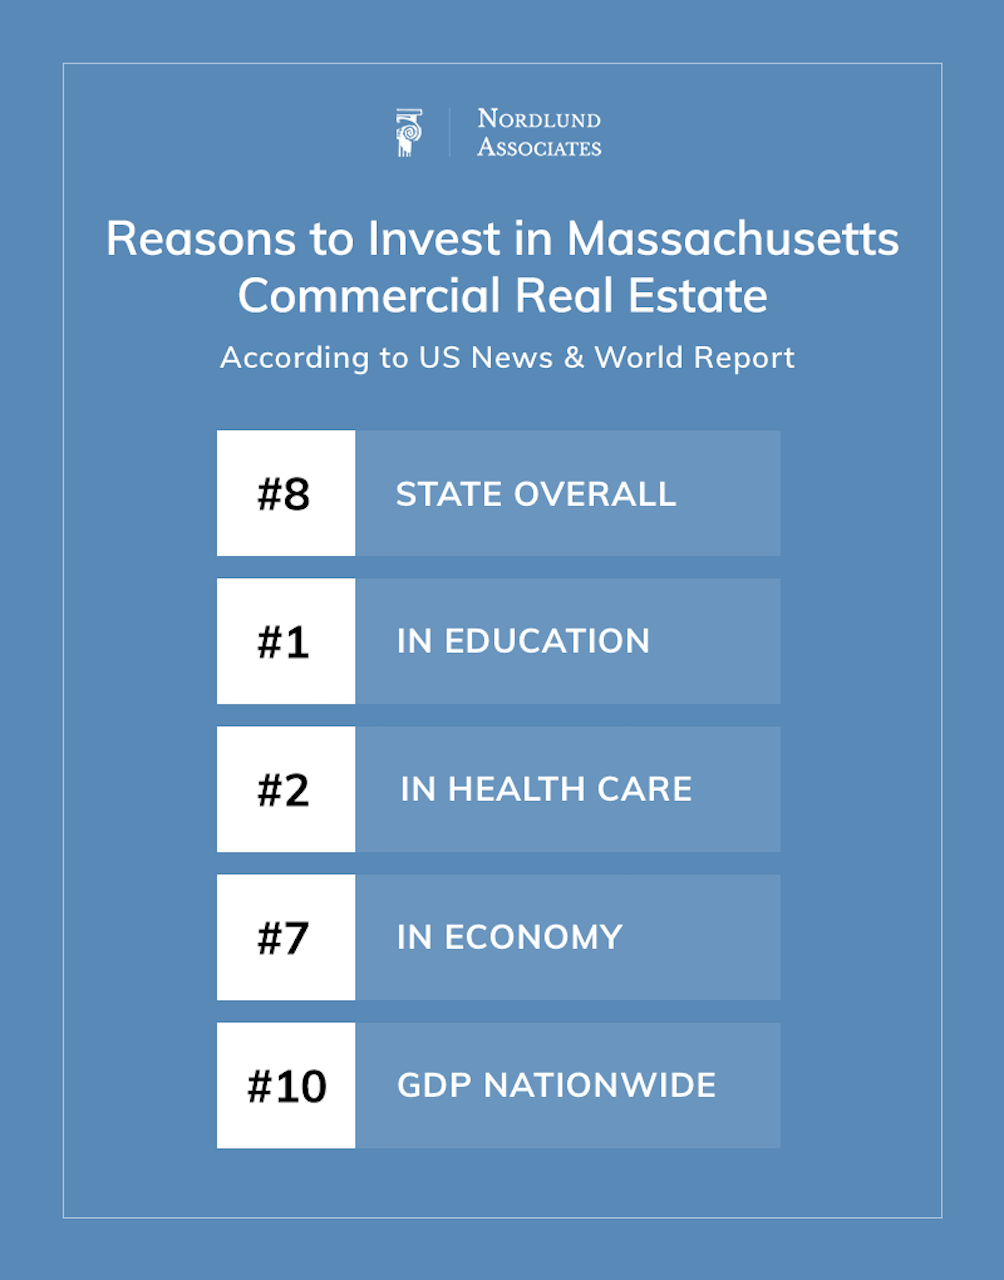 Reasons to Invest in Massachusetts Commercial Real Estate - Nordlund Associates